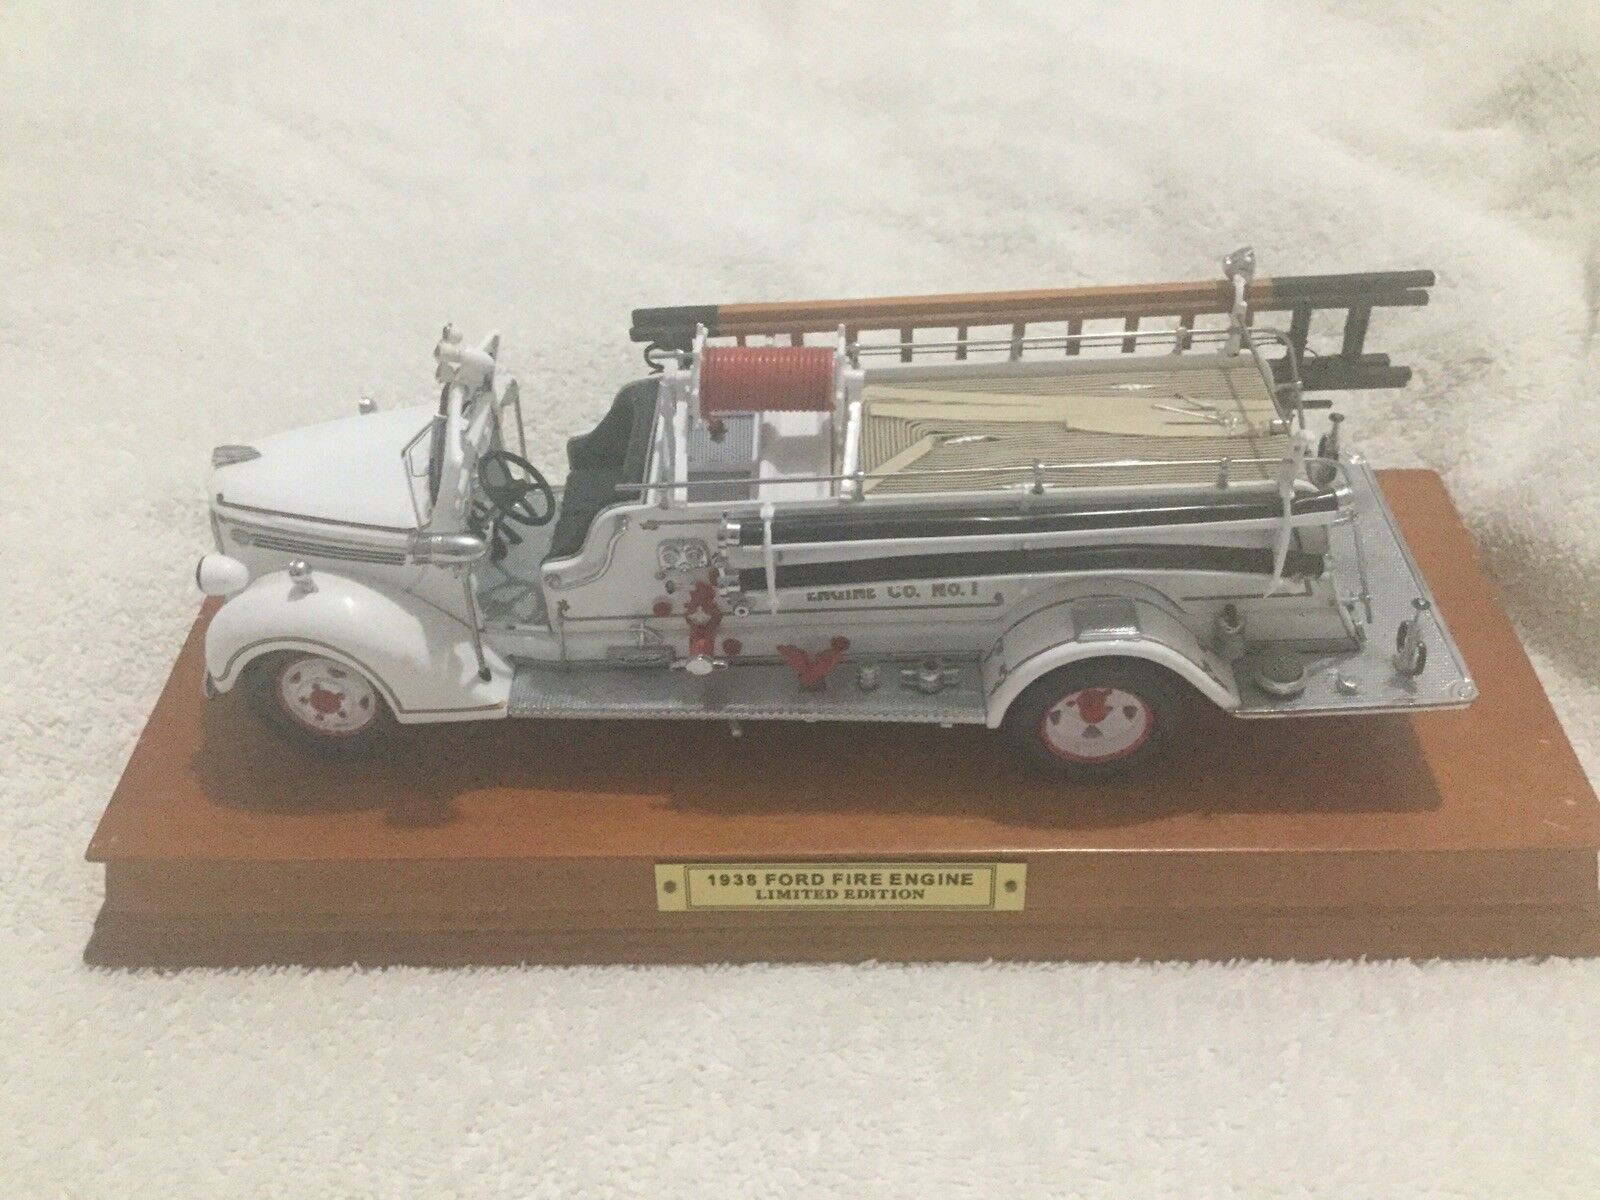 Franklin Mint Ford Fire Engine Limited Edition